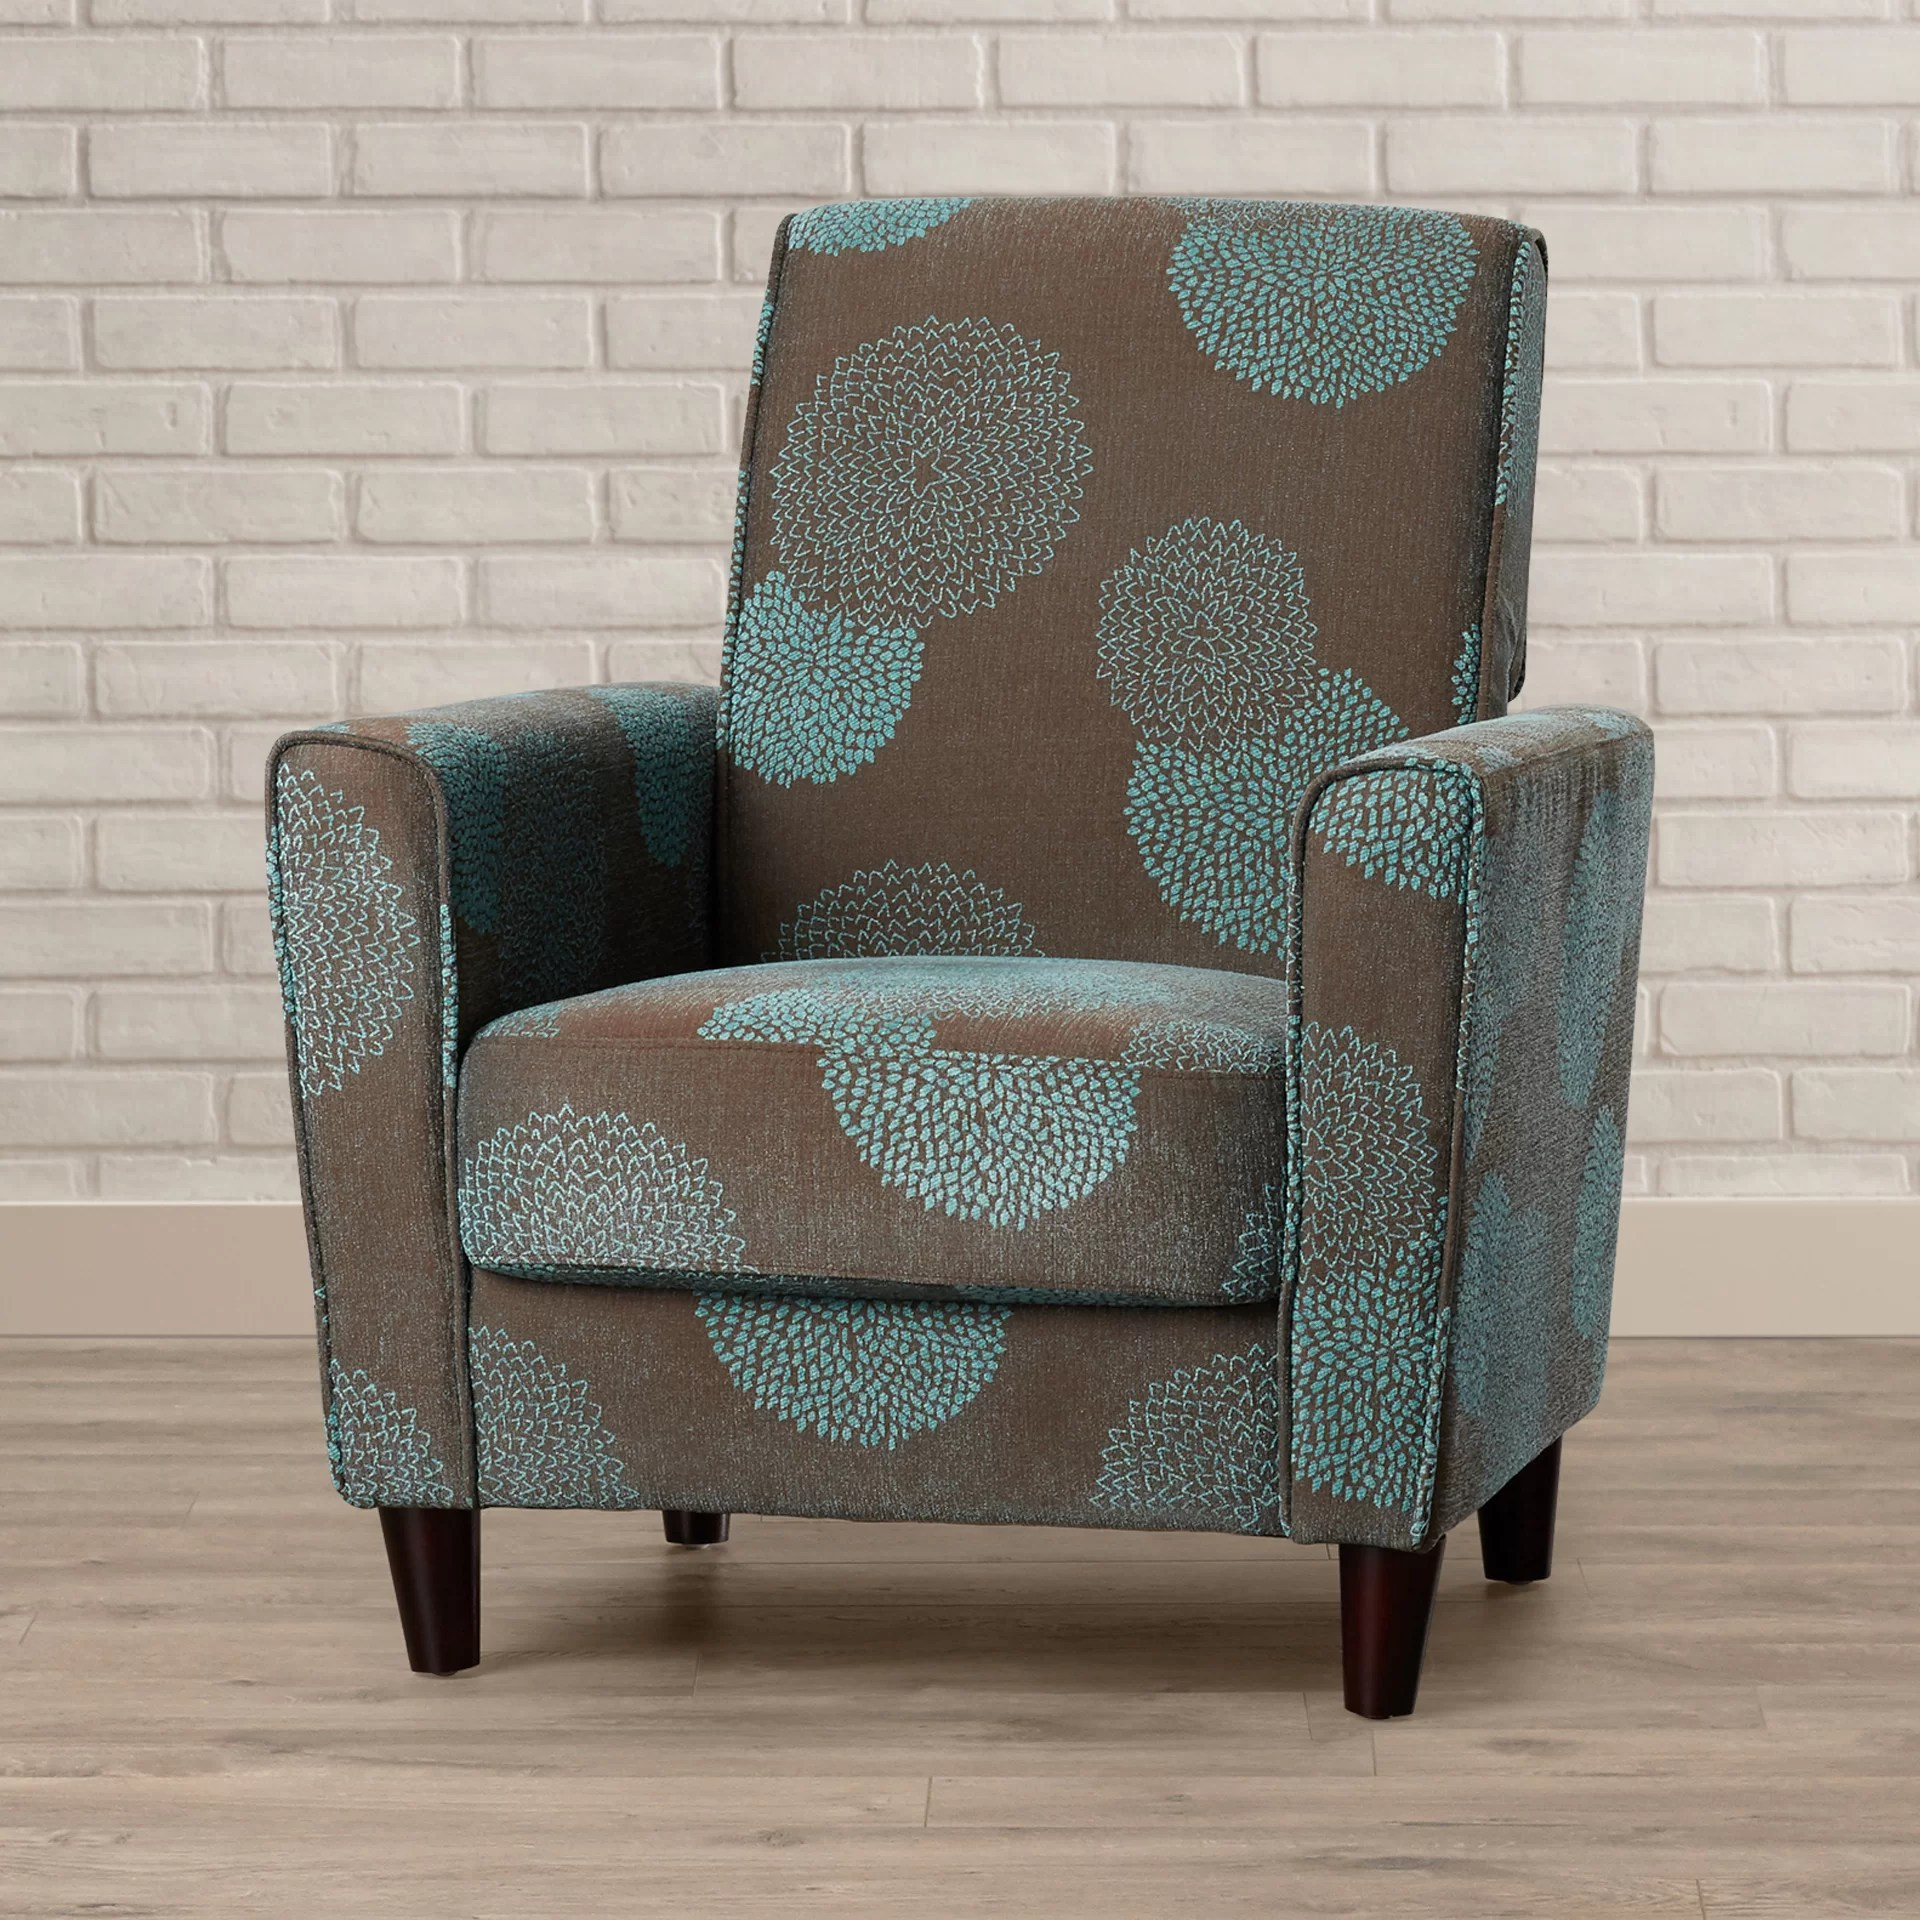 Armed Accent Chairs Varick Gallery Harman Arm Chair And Reviews Wayfair